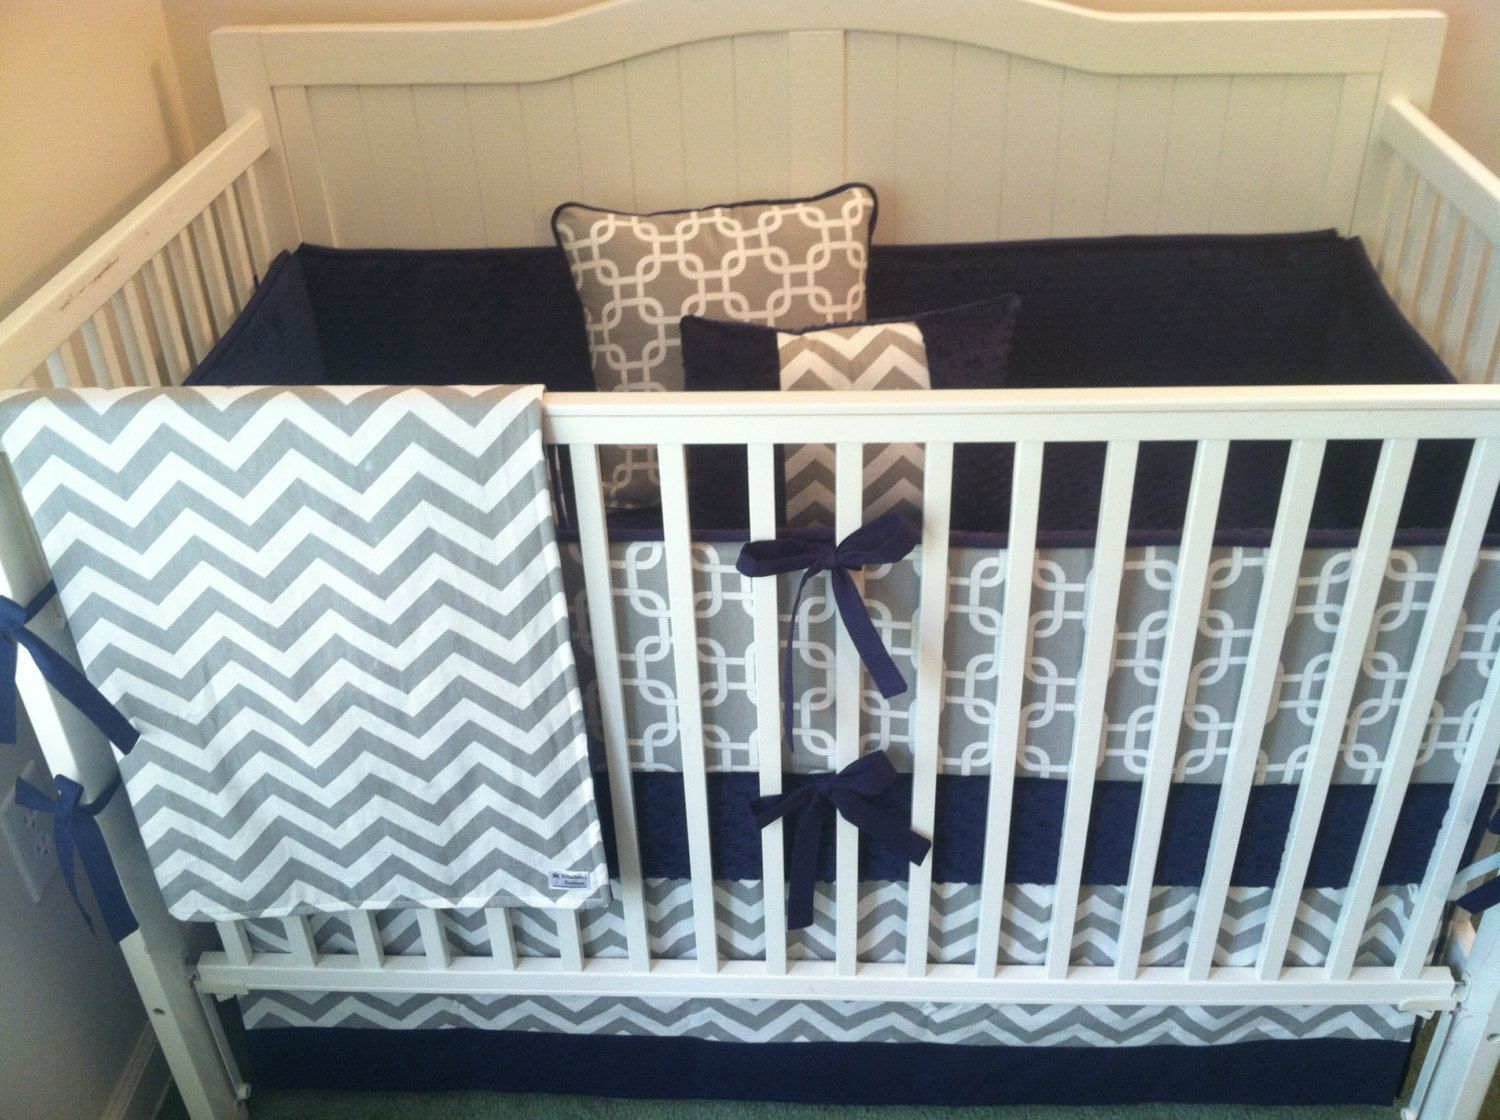 Crib bedding set gray white navy blue with by butterbeansboutique - Crib Bedding Set Gray White Navy Blue By Butterbeansboutique